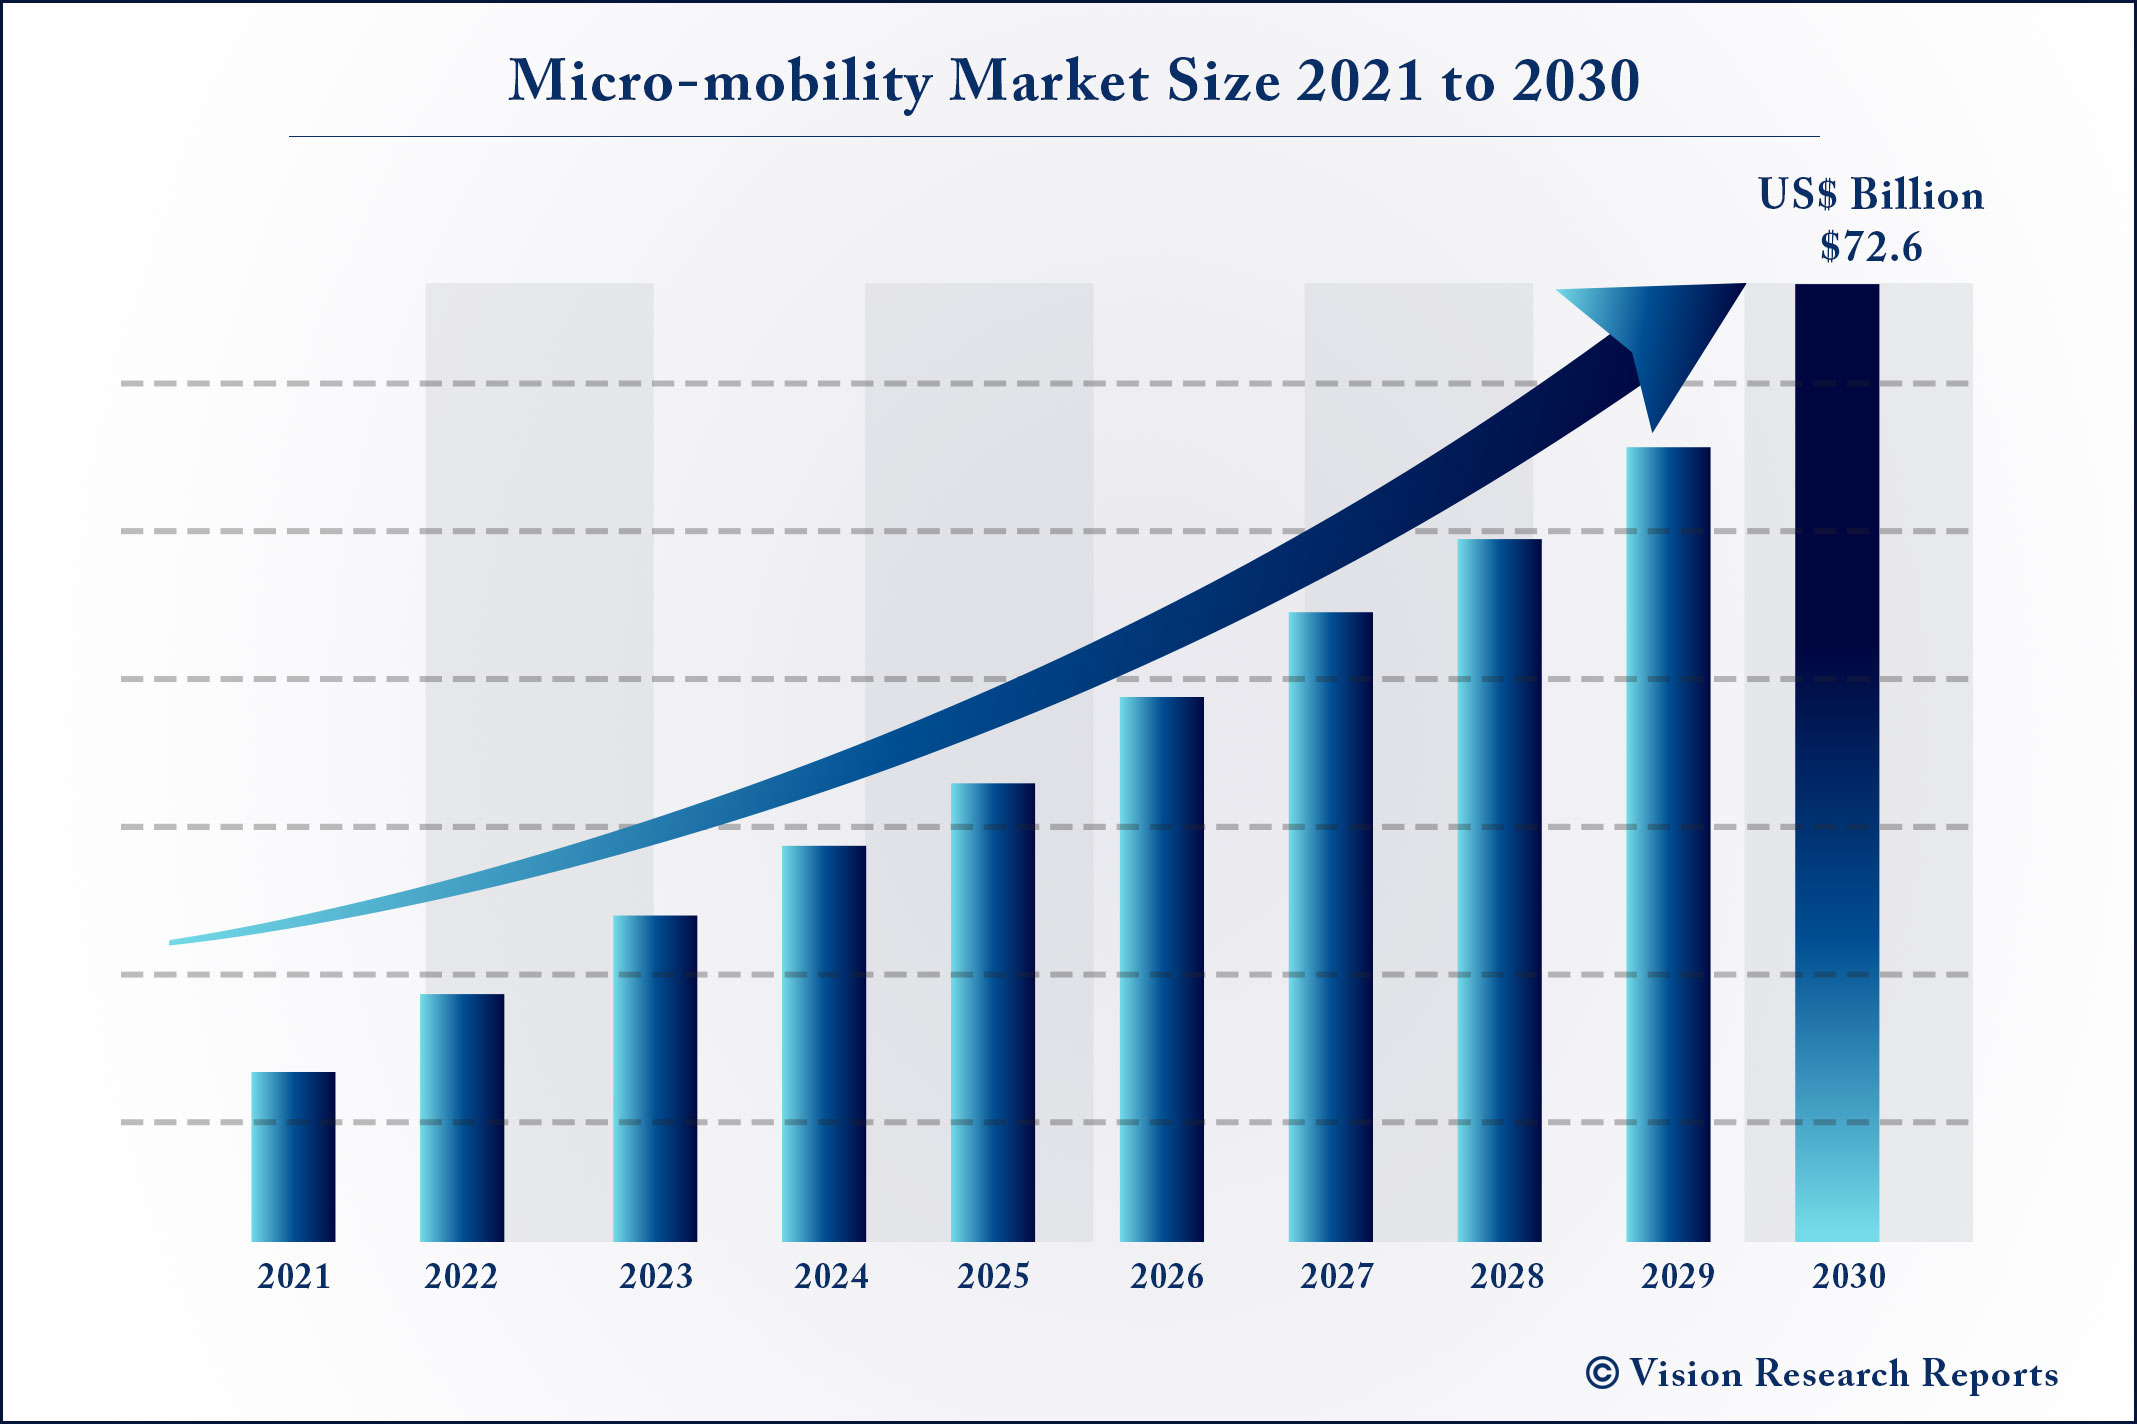 Micro-mobility Market Size 2021 to 2030